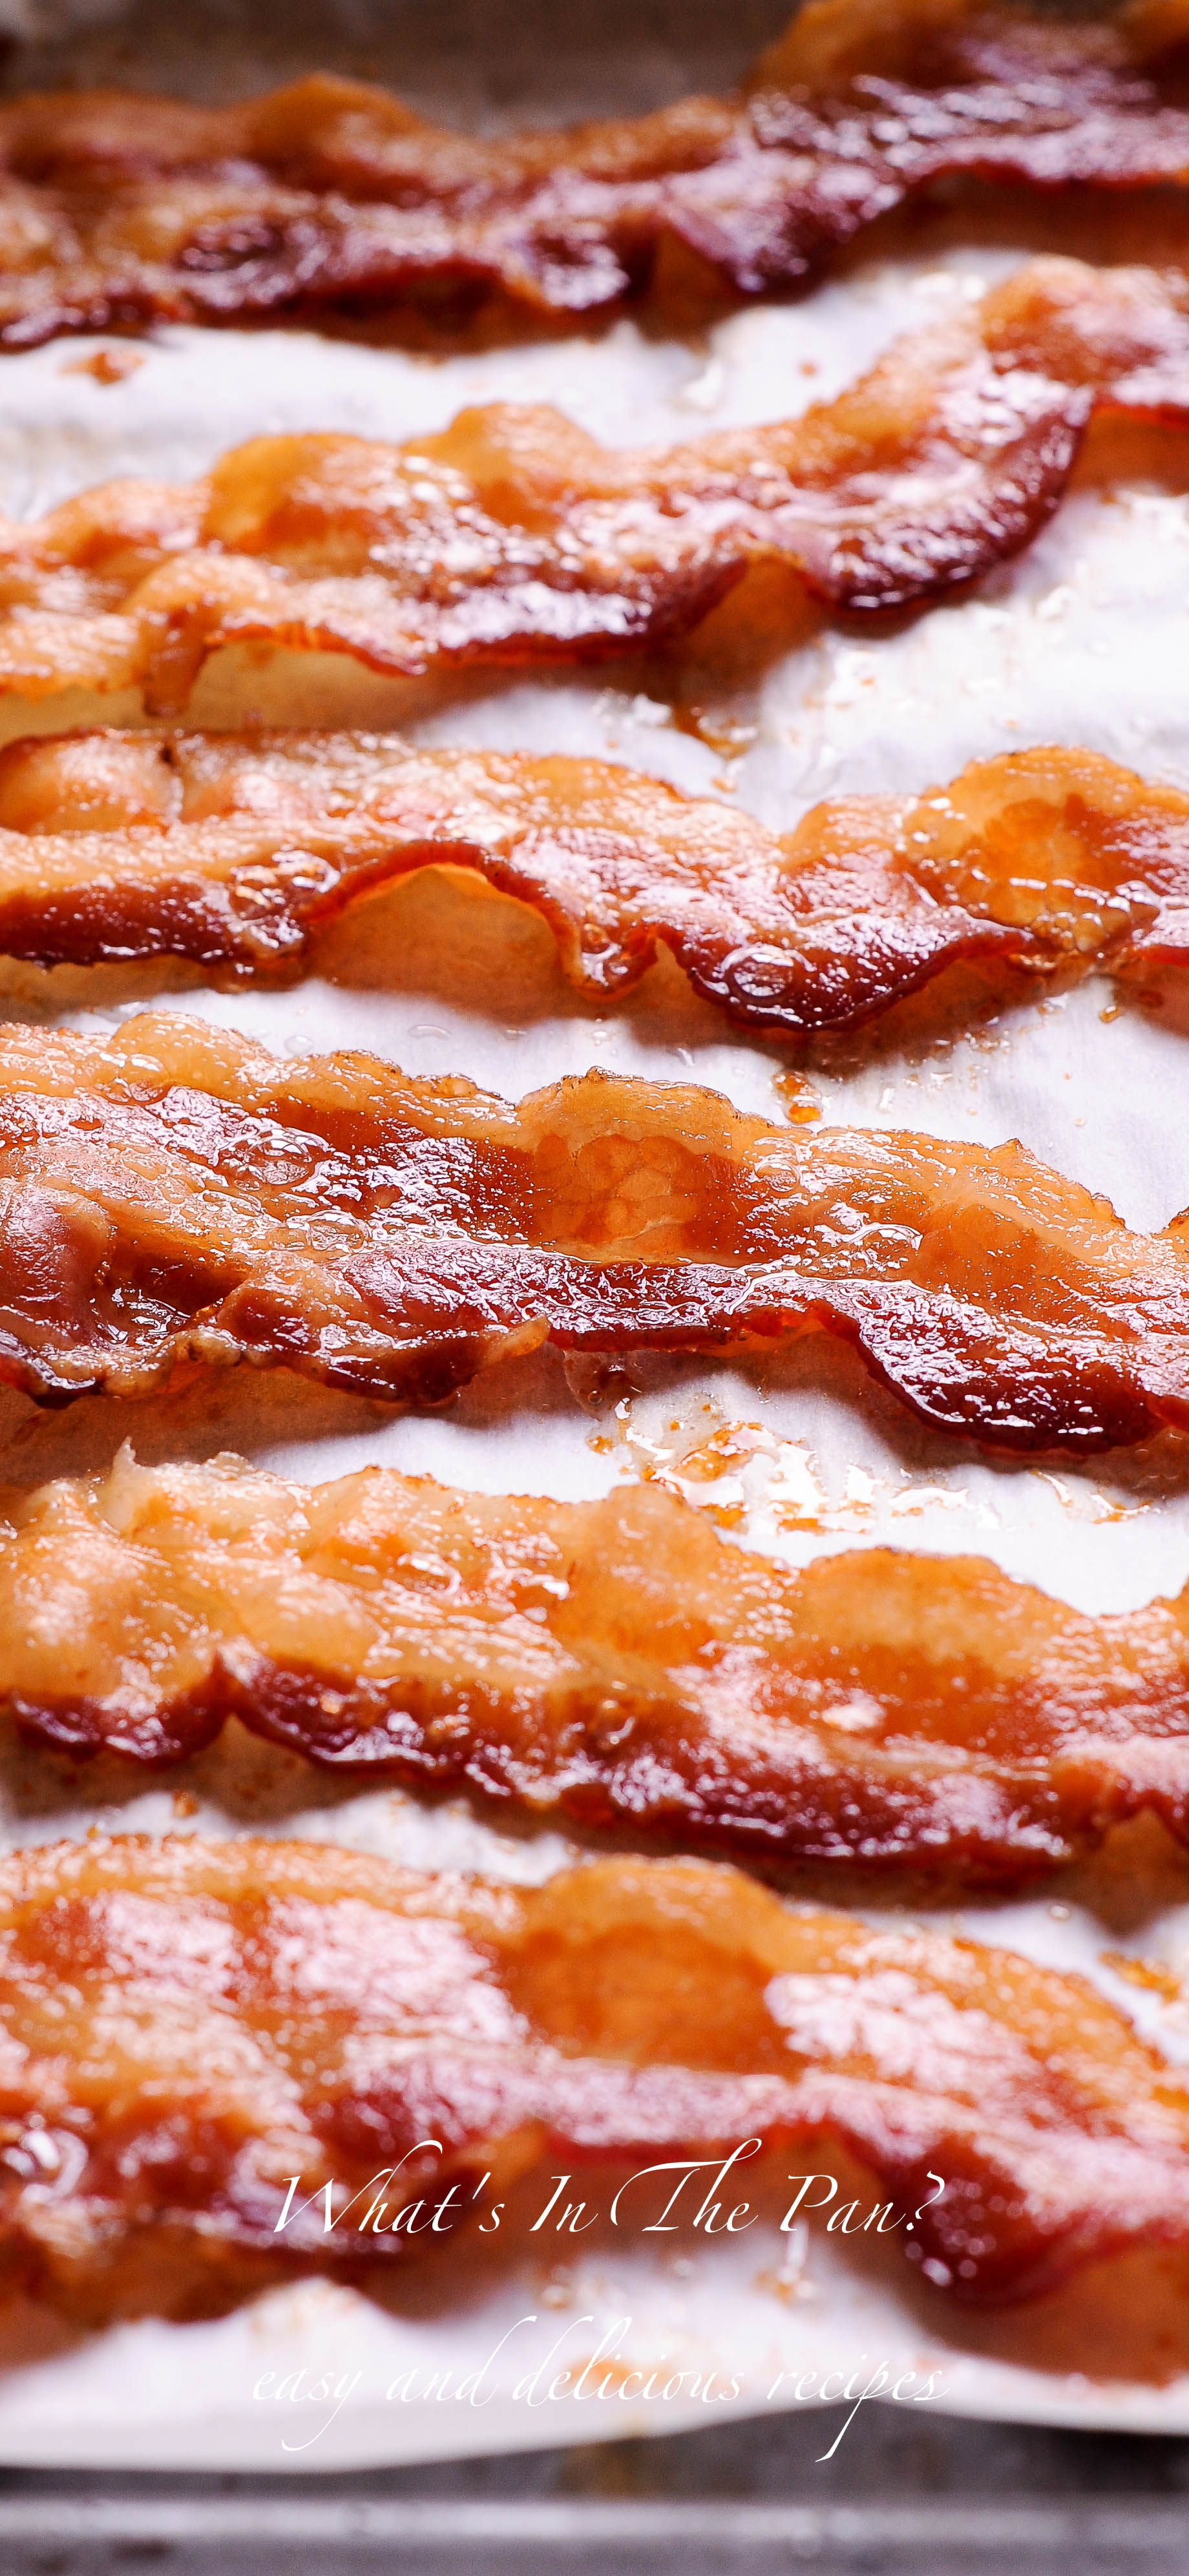 how to get rid of bacon grease while cooking